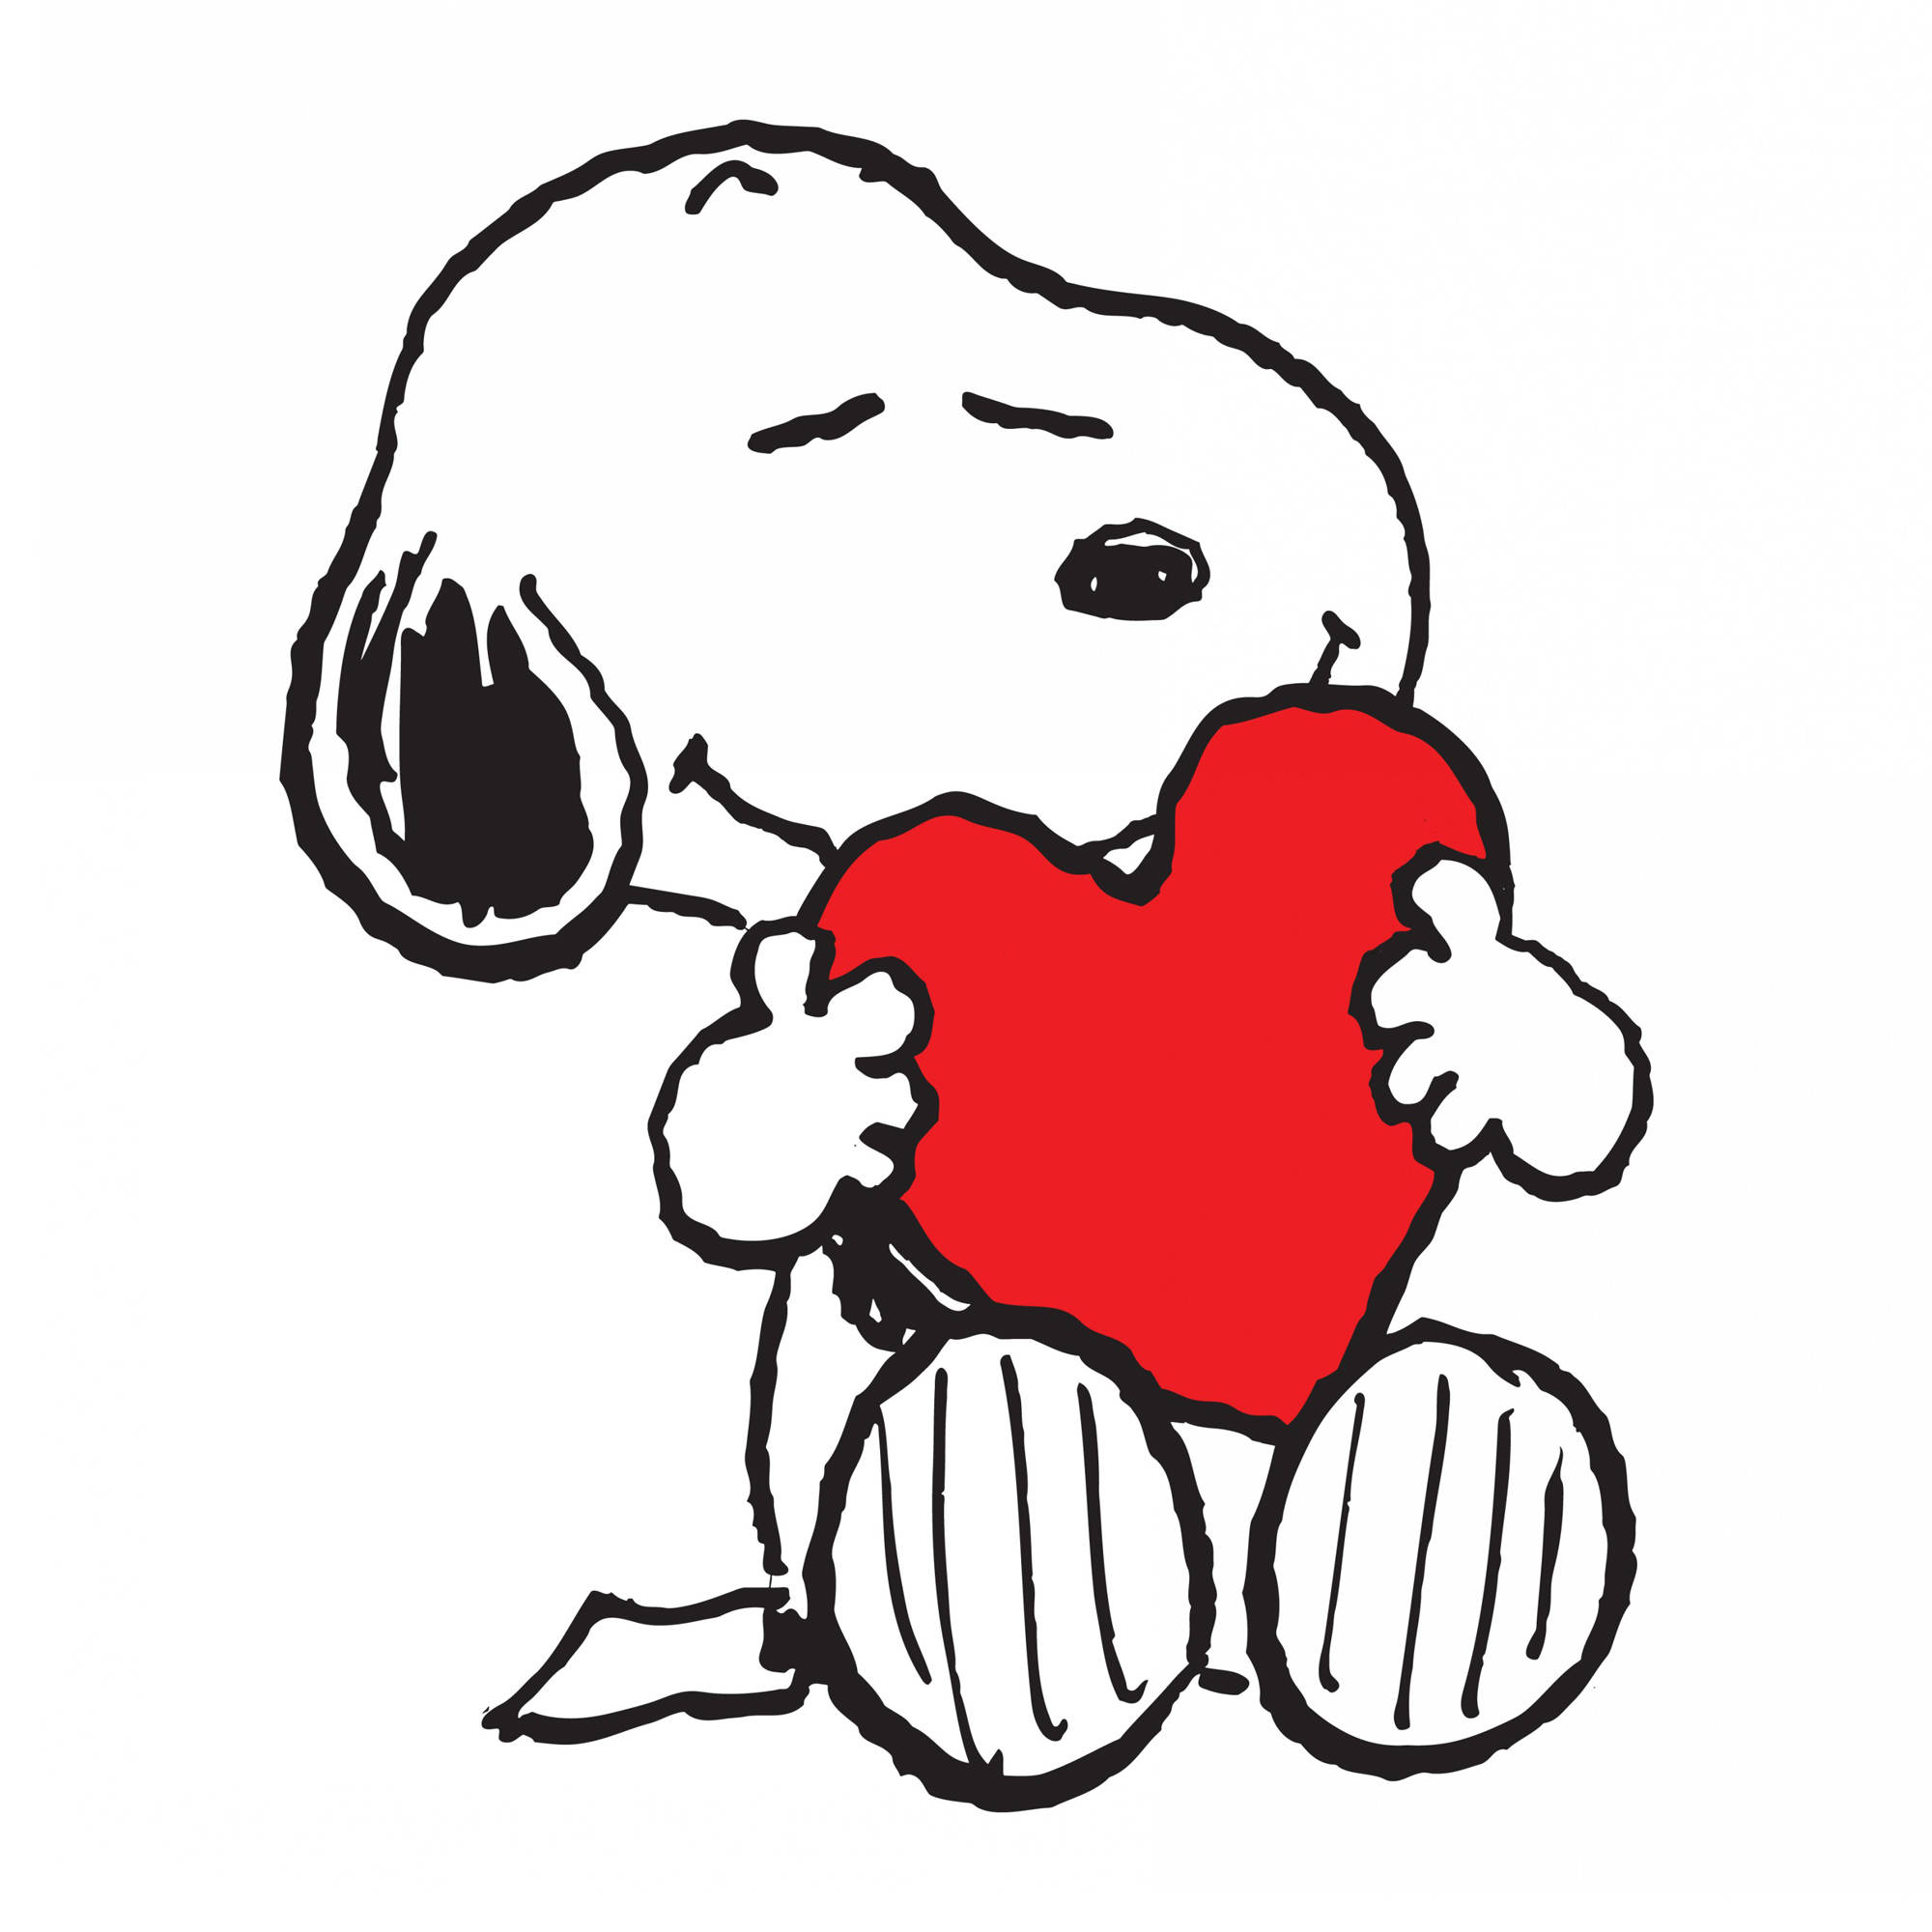 Marmont Hill Quot Snoopy Heart Quot Peanuts Print On Canvas